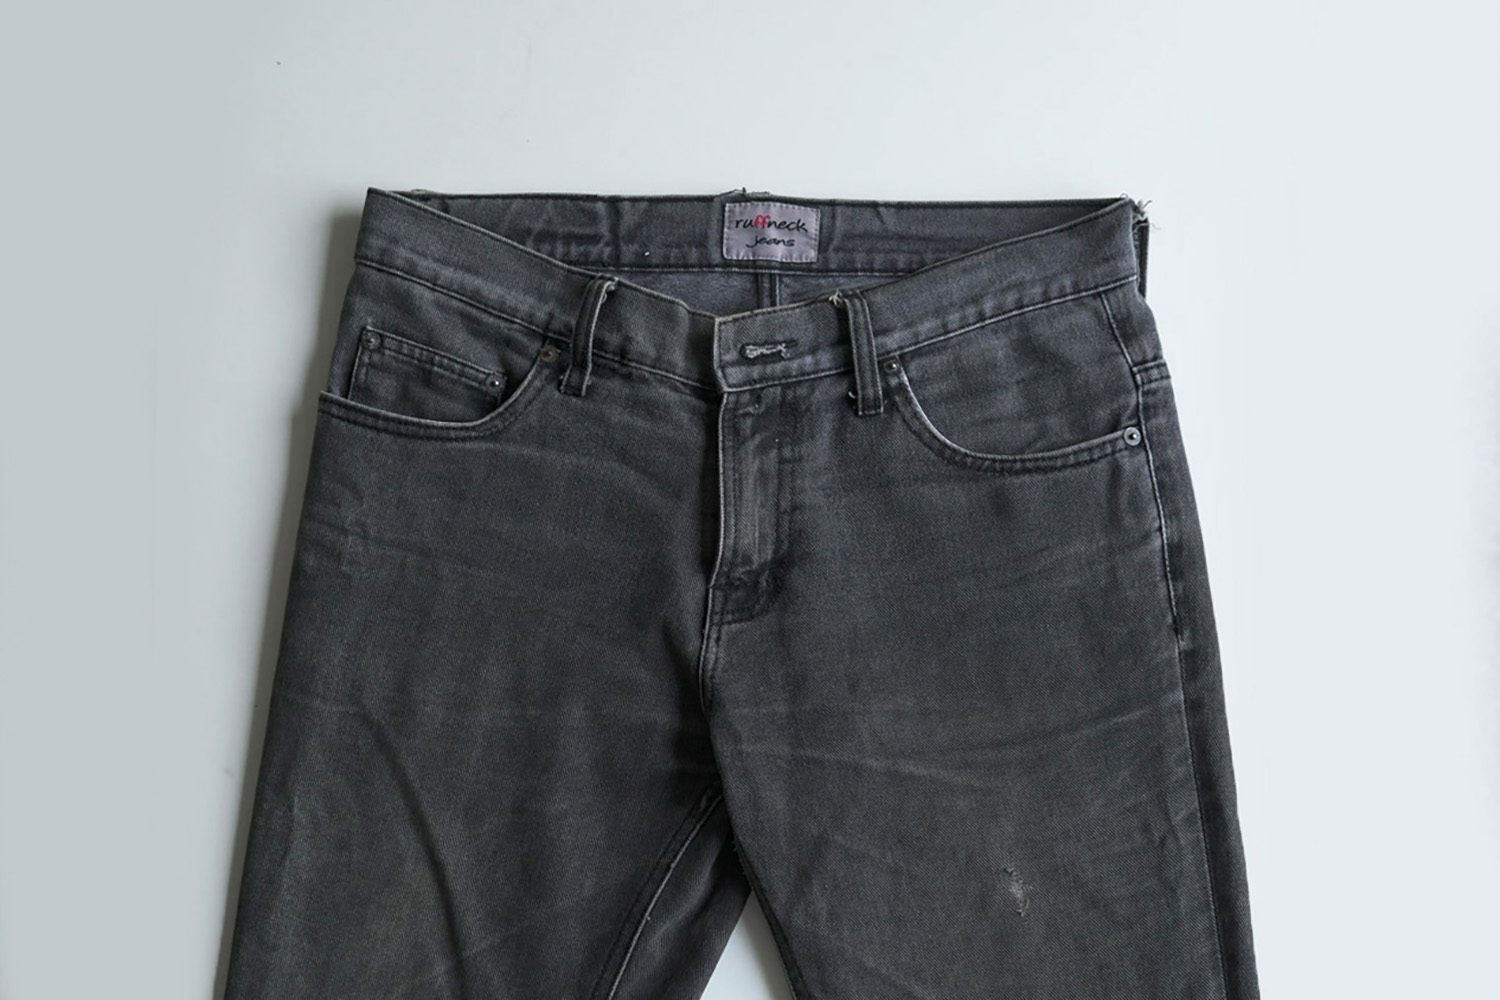 Neighbourlist_Indonesian_Jeans_pioneer_Ruffneck8